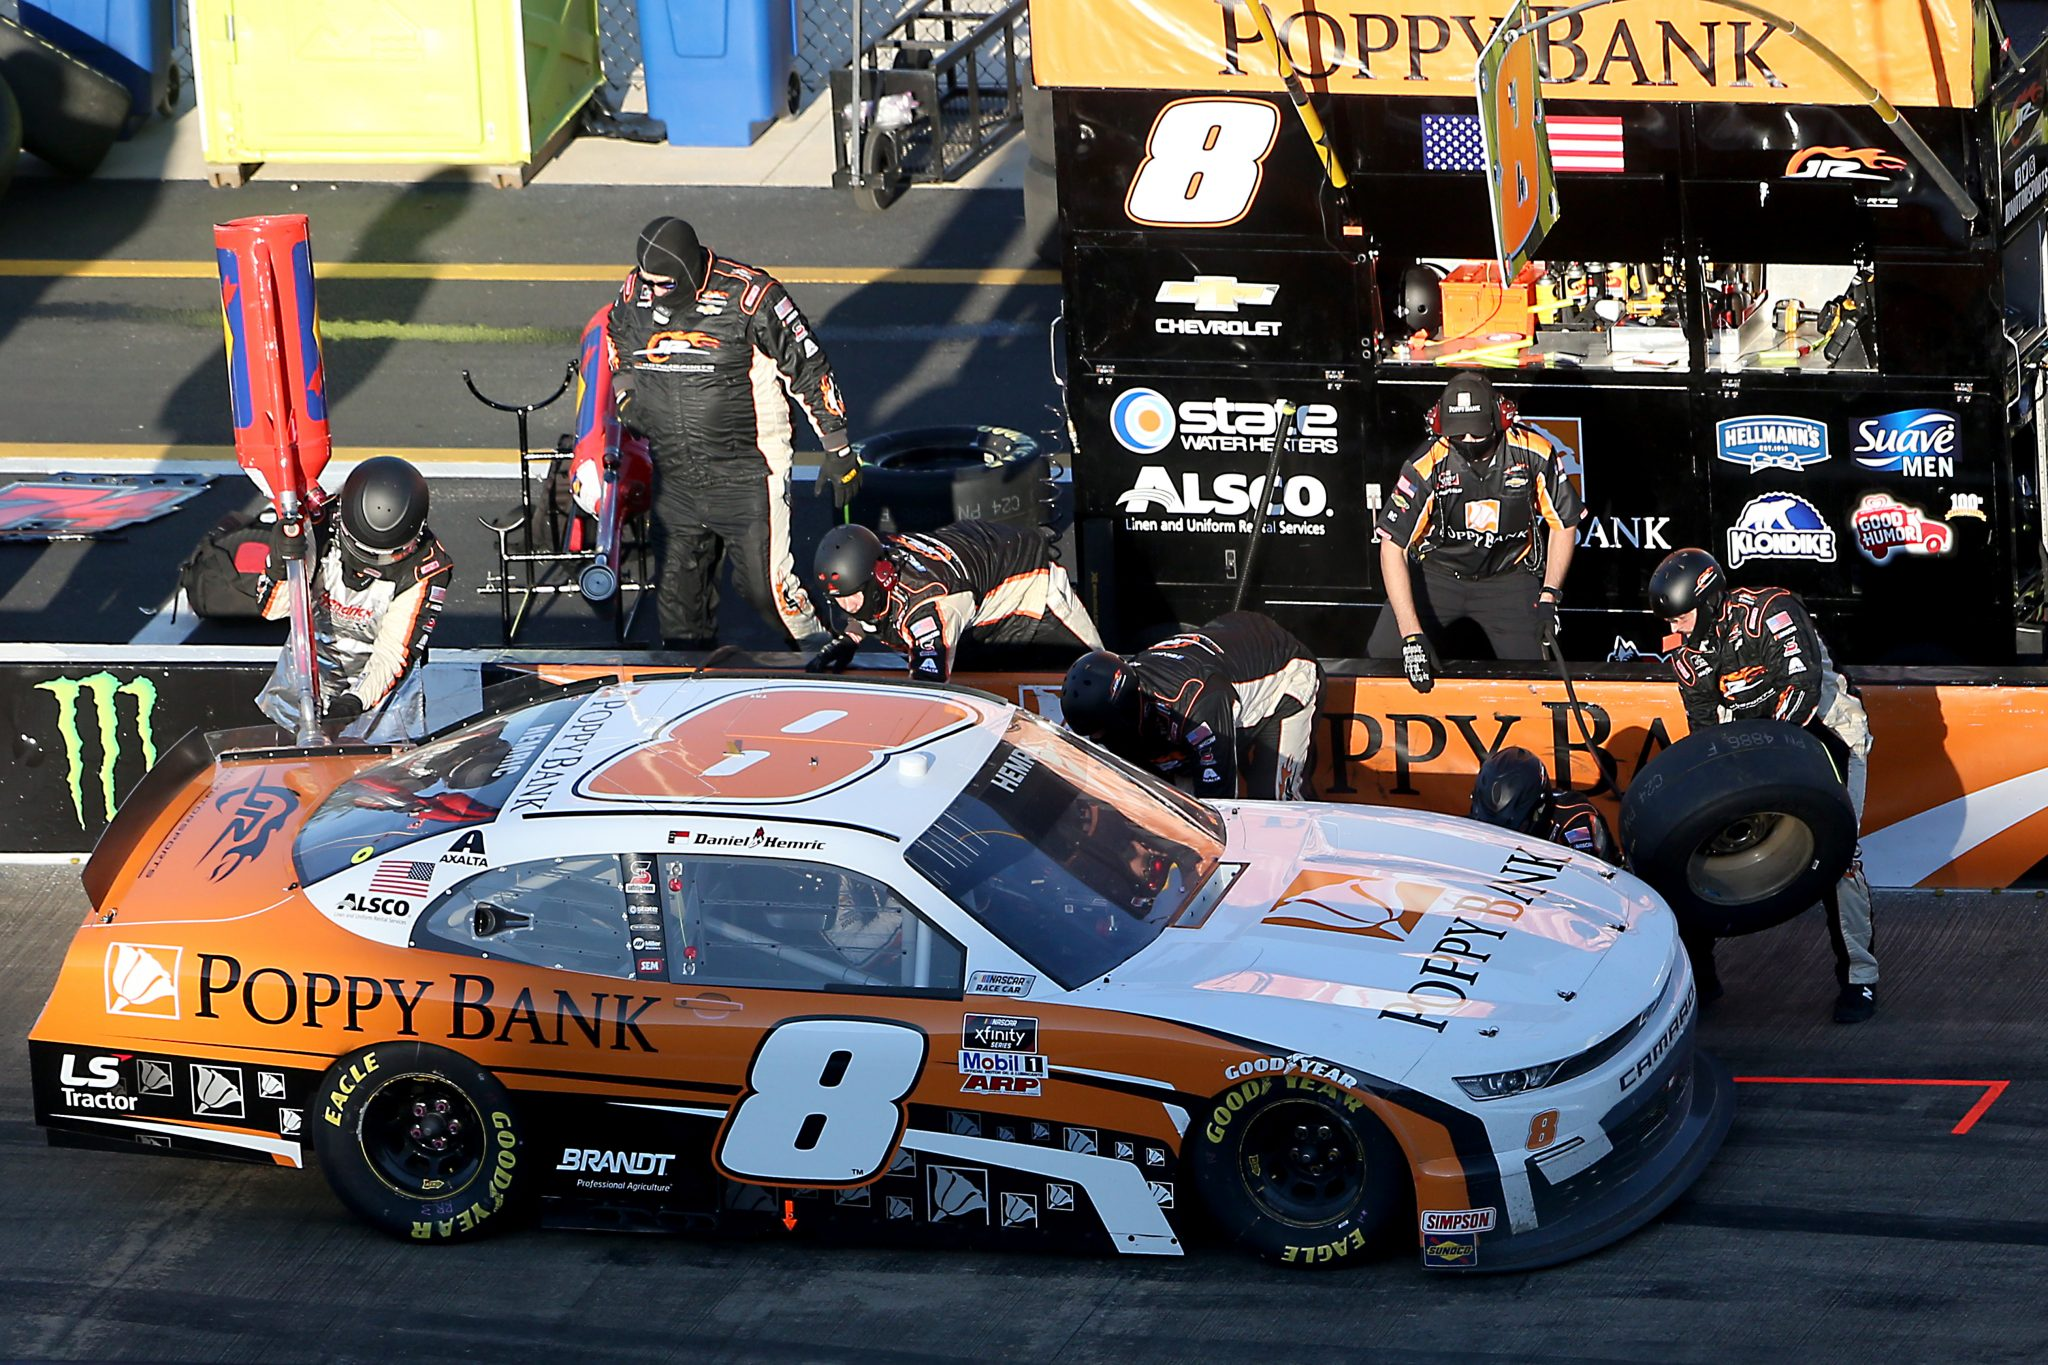 TALLADEGA, ALABAMA - OCTOBER 03: Daniel Hemric, driver of the #8 Poppy Bank Chevrolet, pits during the NASCAR Xfinity Series Ag-Pro 300 at Talladega Superspeedway on October 03, 2020 in Talladega, Alabama. (Photo by Brian Lawdermilk/Getty Images) | Getty Images